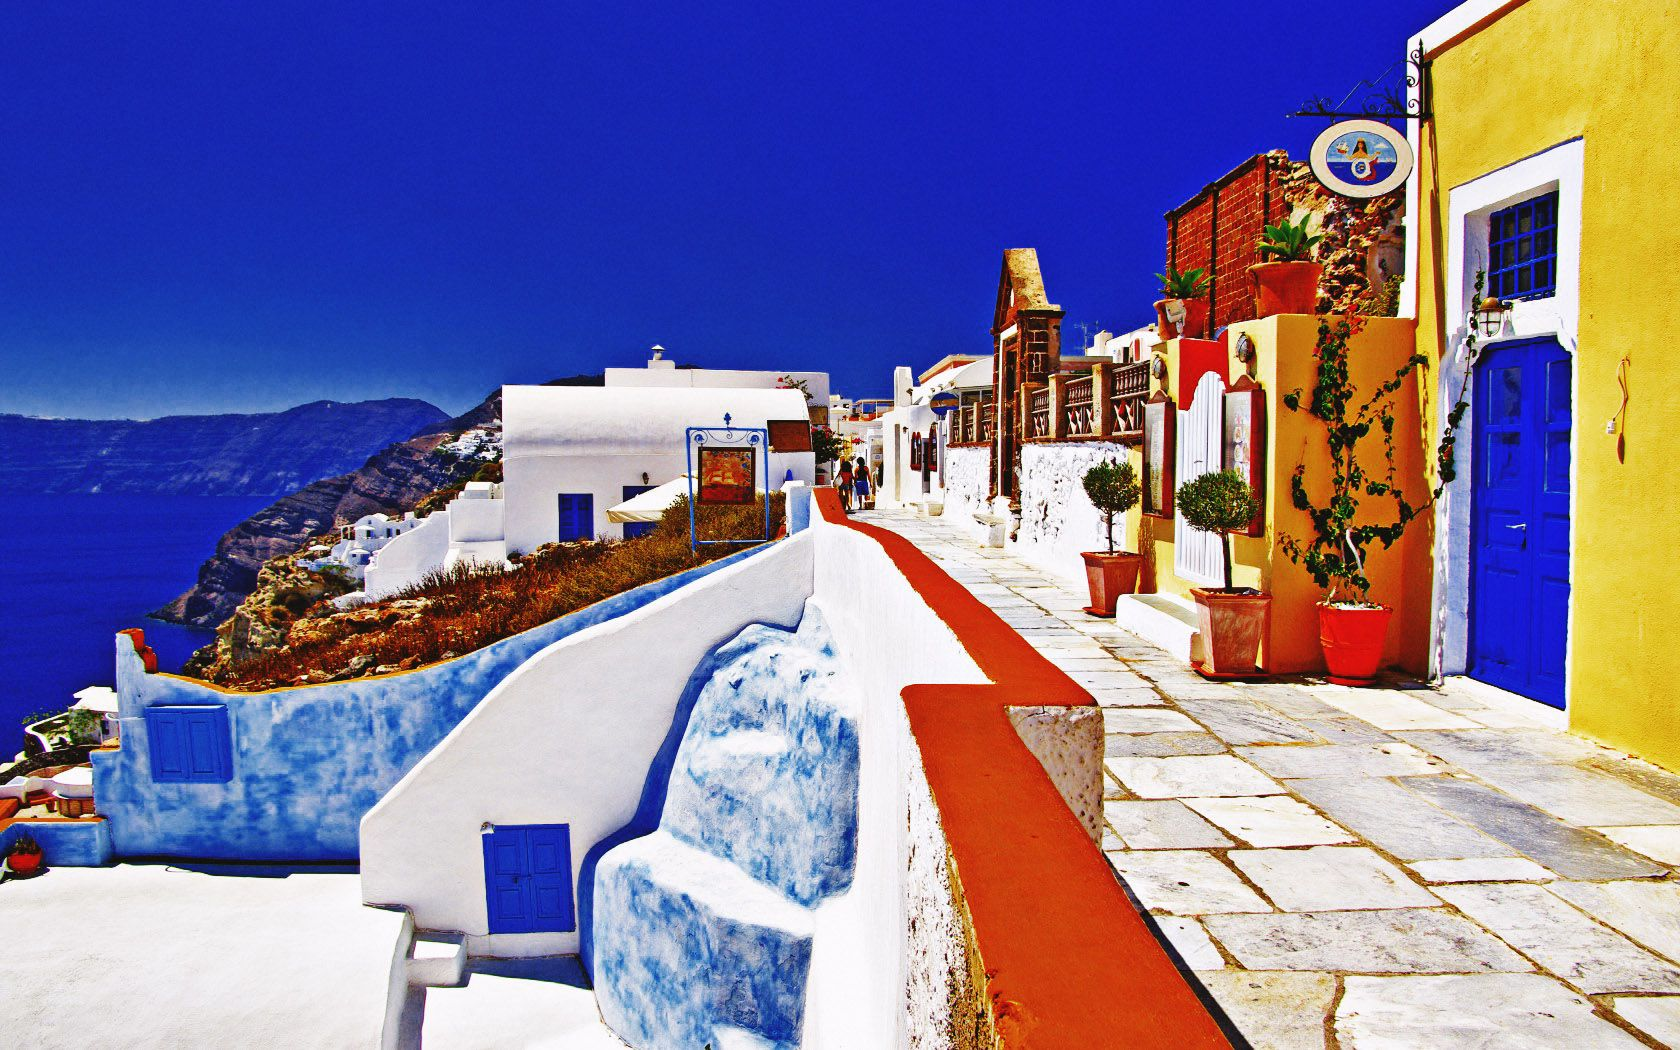 Santorini Wallpaper 109 images in Collection Page 1 1680x1050